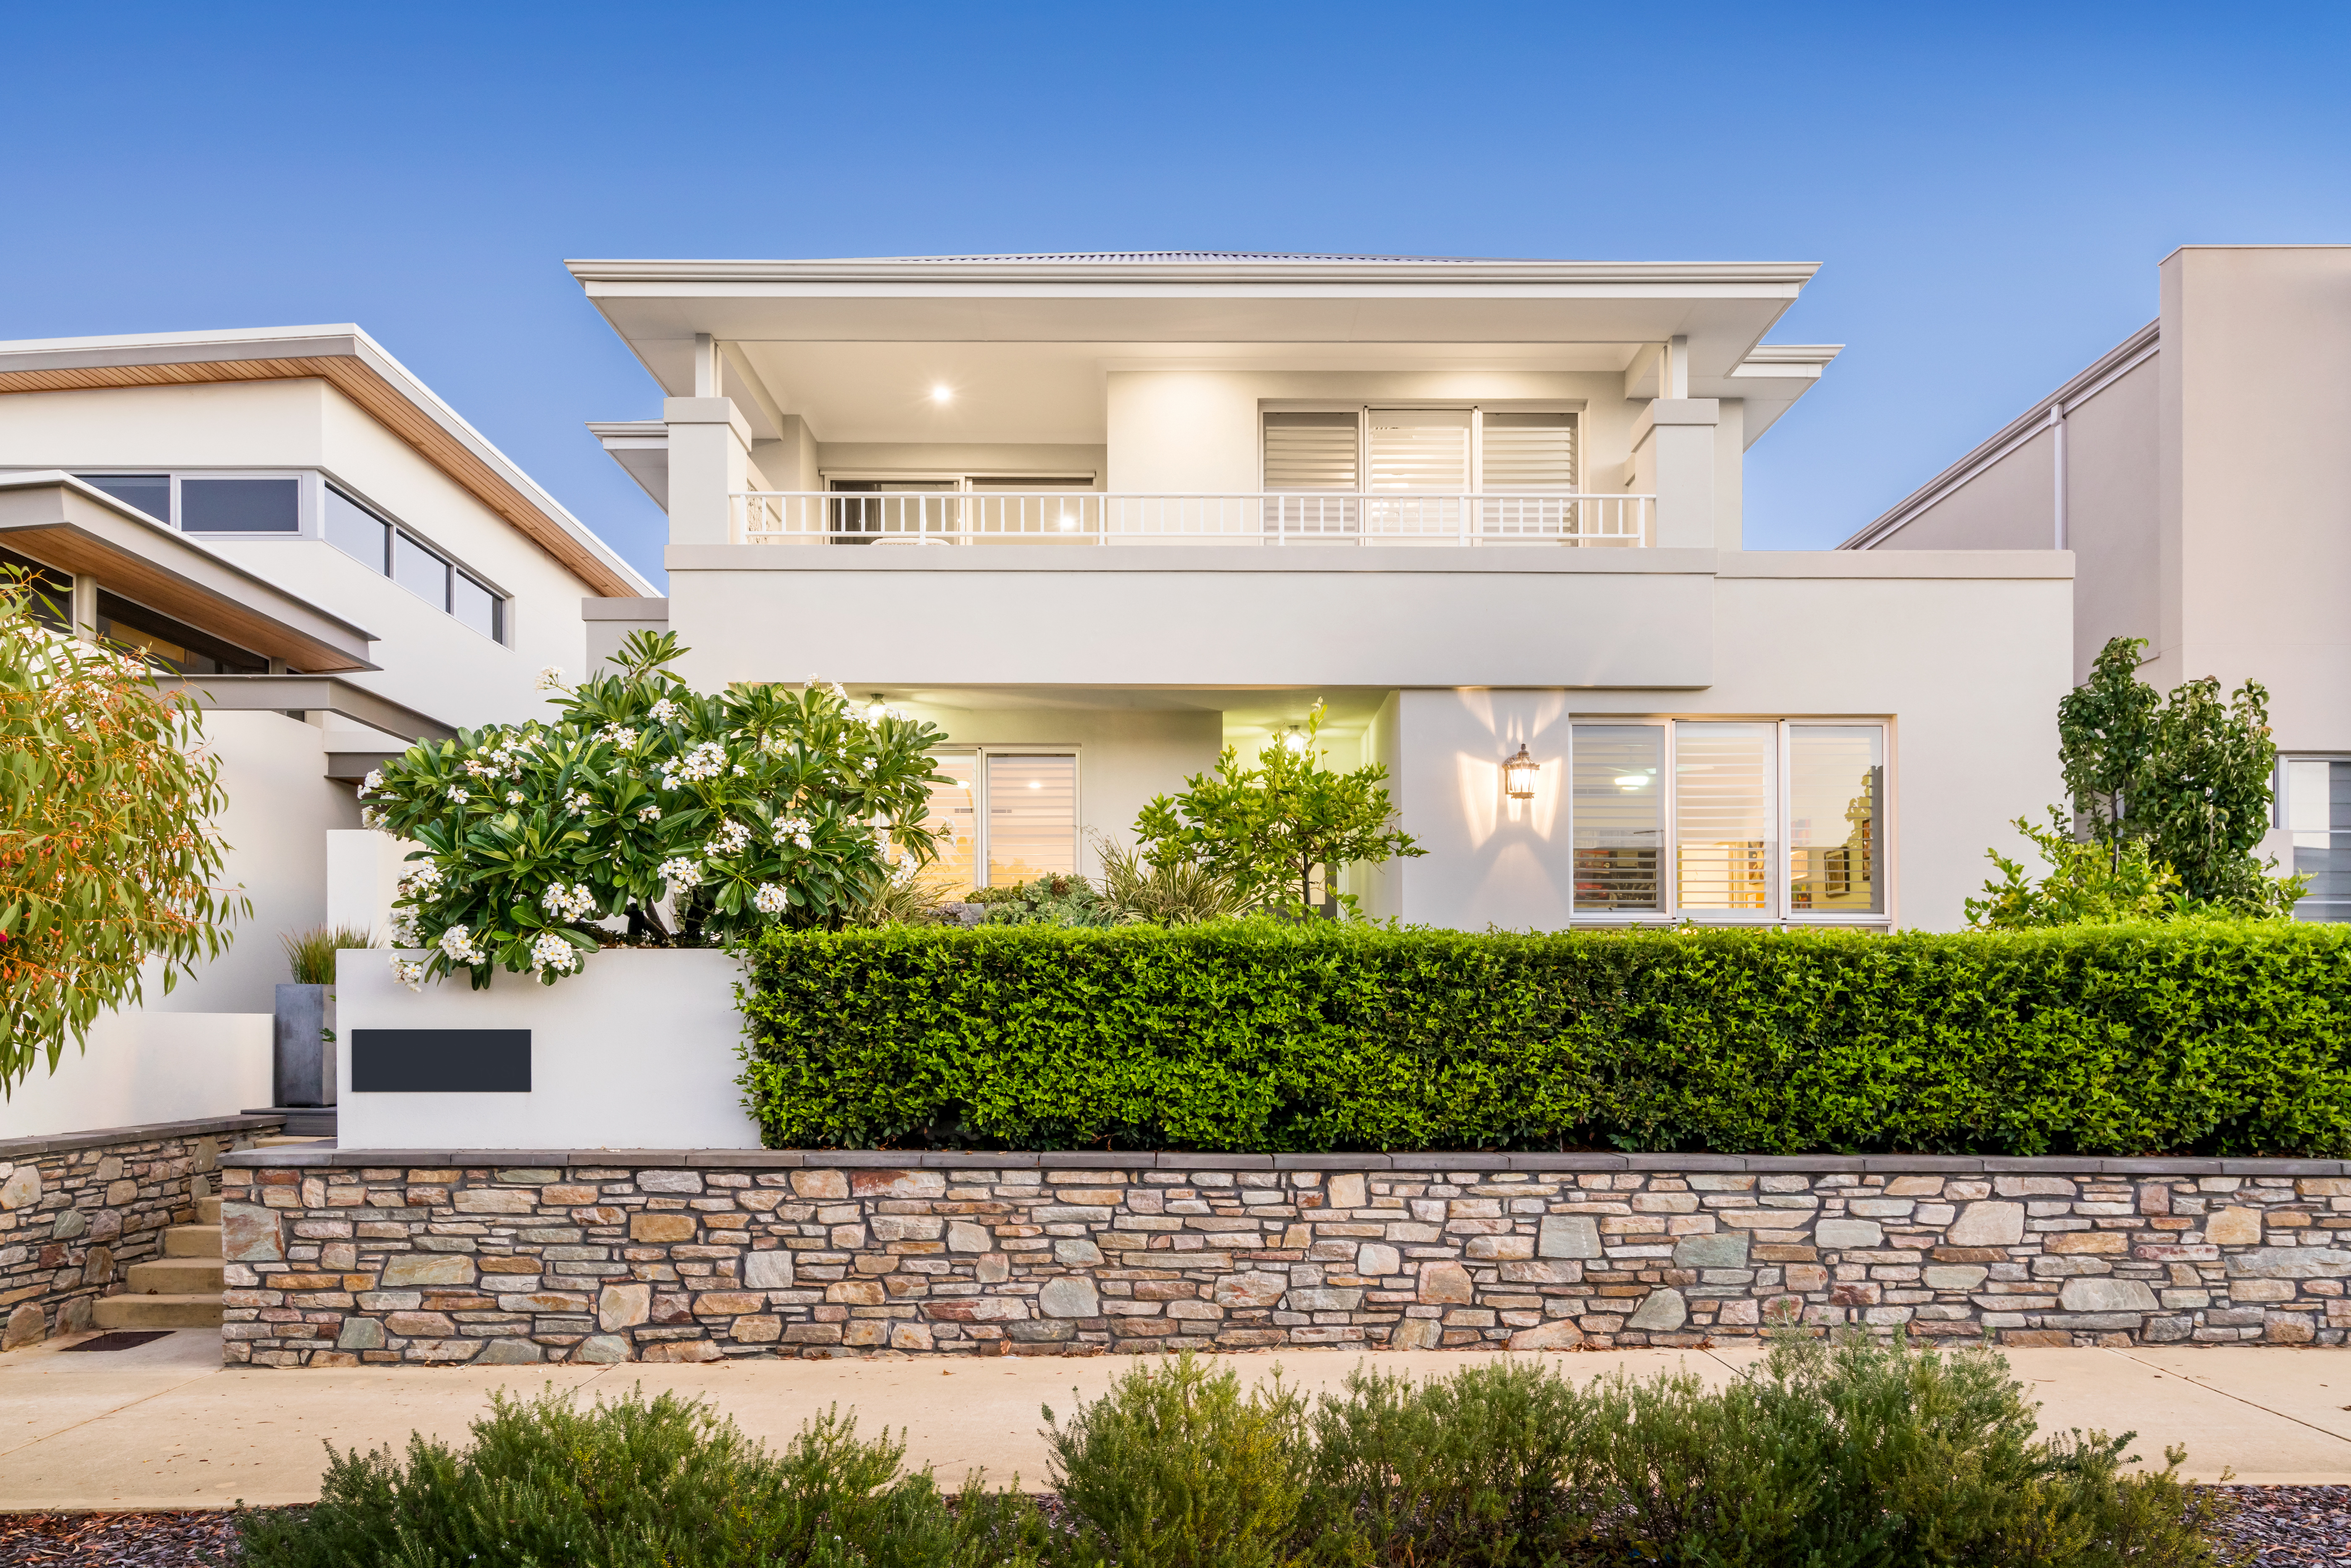 Property Boom 2.0: We reveal the biggest property trend of 2021